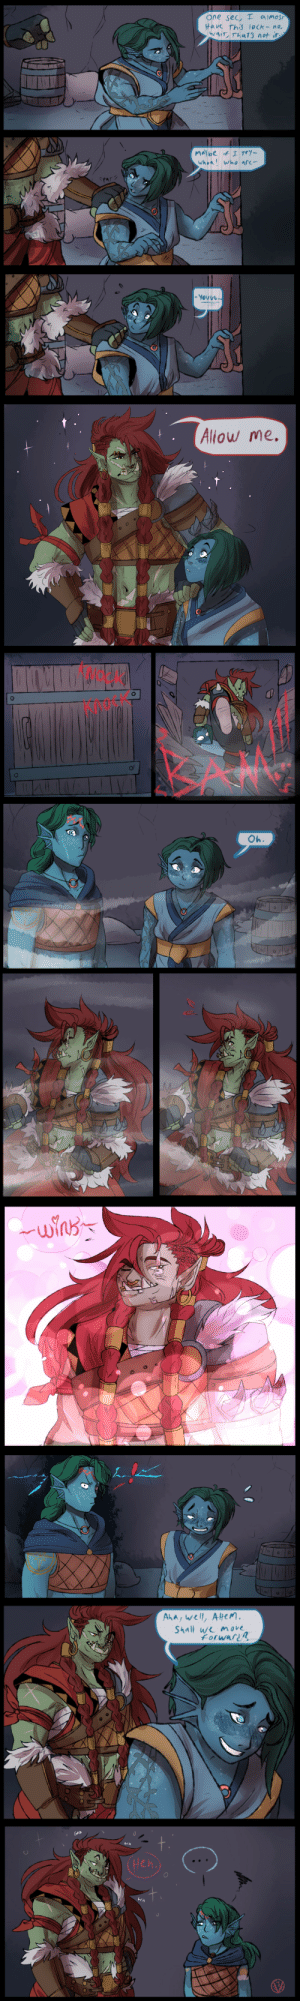 jen-iii:    I got REALLY fun commission from a friend who guest starred in one of our party campaign sessions! He wanted a scene where his OC'S, Bran and Nona (siblings), meet Brutaak because during that session, Nona fell HARD for this chunk of 100% Beef and here's how the scene went  : jen-iii:    I got REALLY fun commission from a friend who guest starred in one of our party campaign sessions! He wanted a scene where his OC'S, Bran and Nona (siblings), meet Brutaak because during that session, Nona fell HARD for this chunk of 100% Beef and here's how the scene went